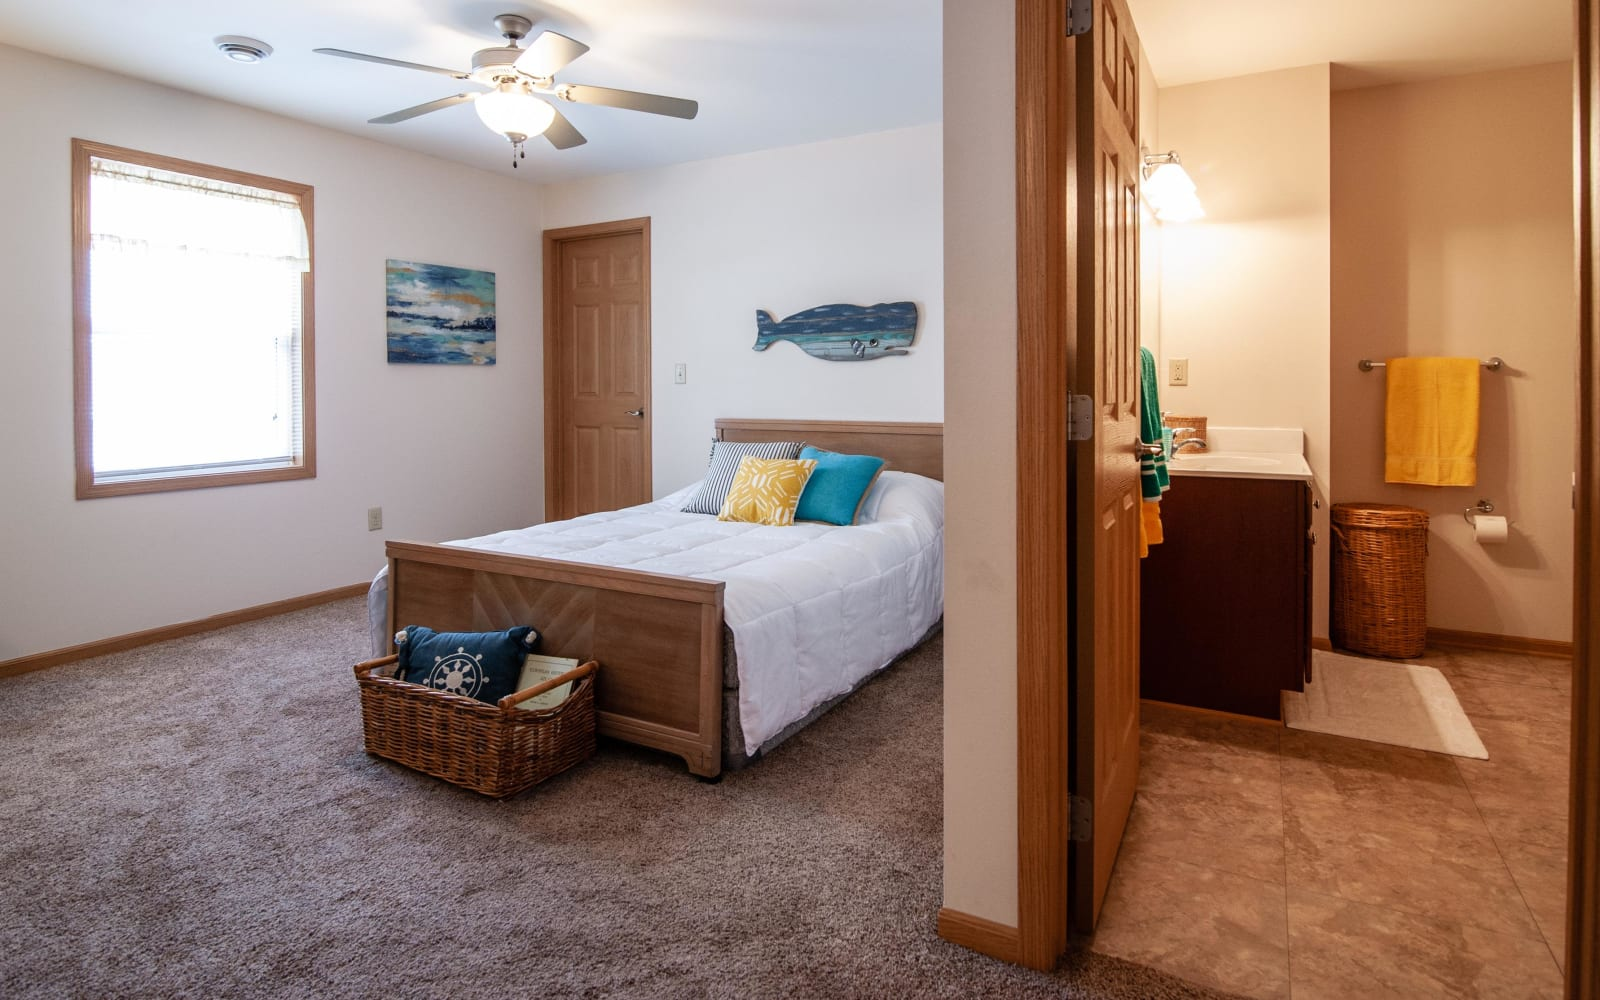 Master bedroom at South Meadow in Ames, Iowa.